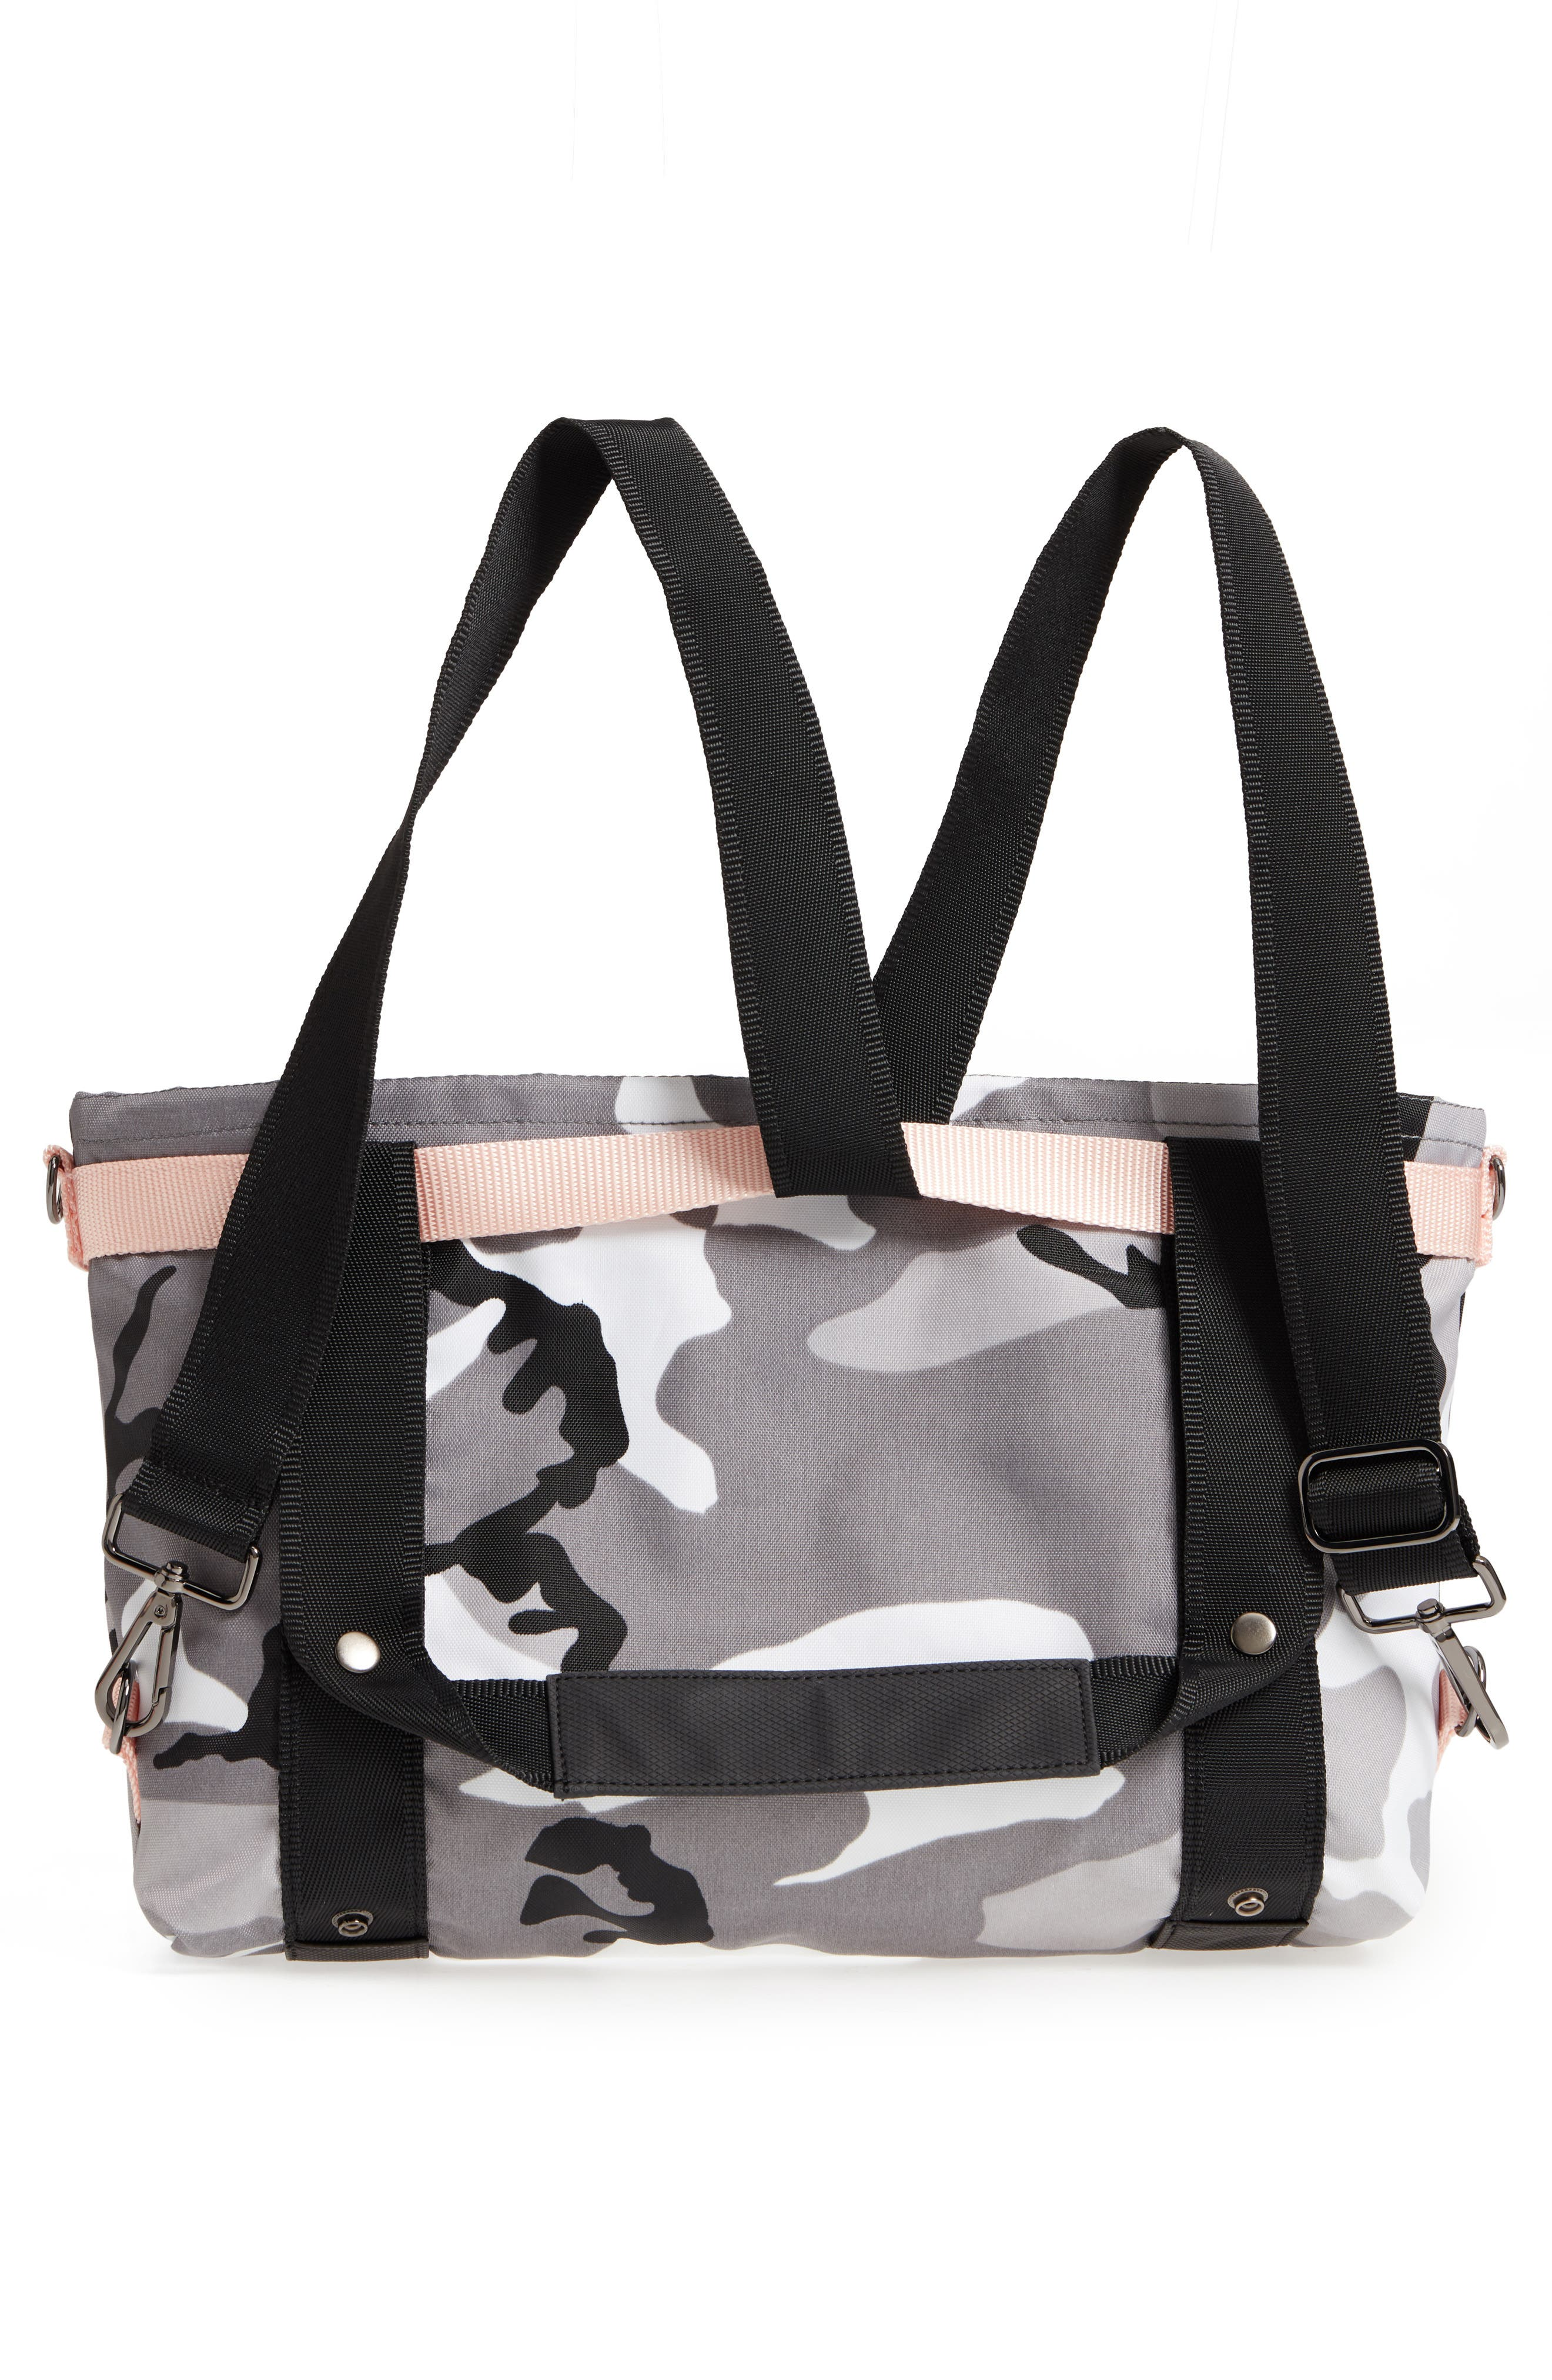 The ANDI Small Convertible Tote,                             Alternate thumbnail 3, color,                             BLACK/ WHITE/ GRAY/ PINK